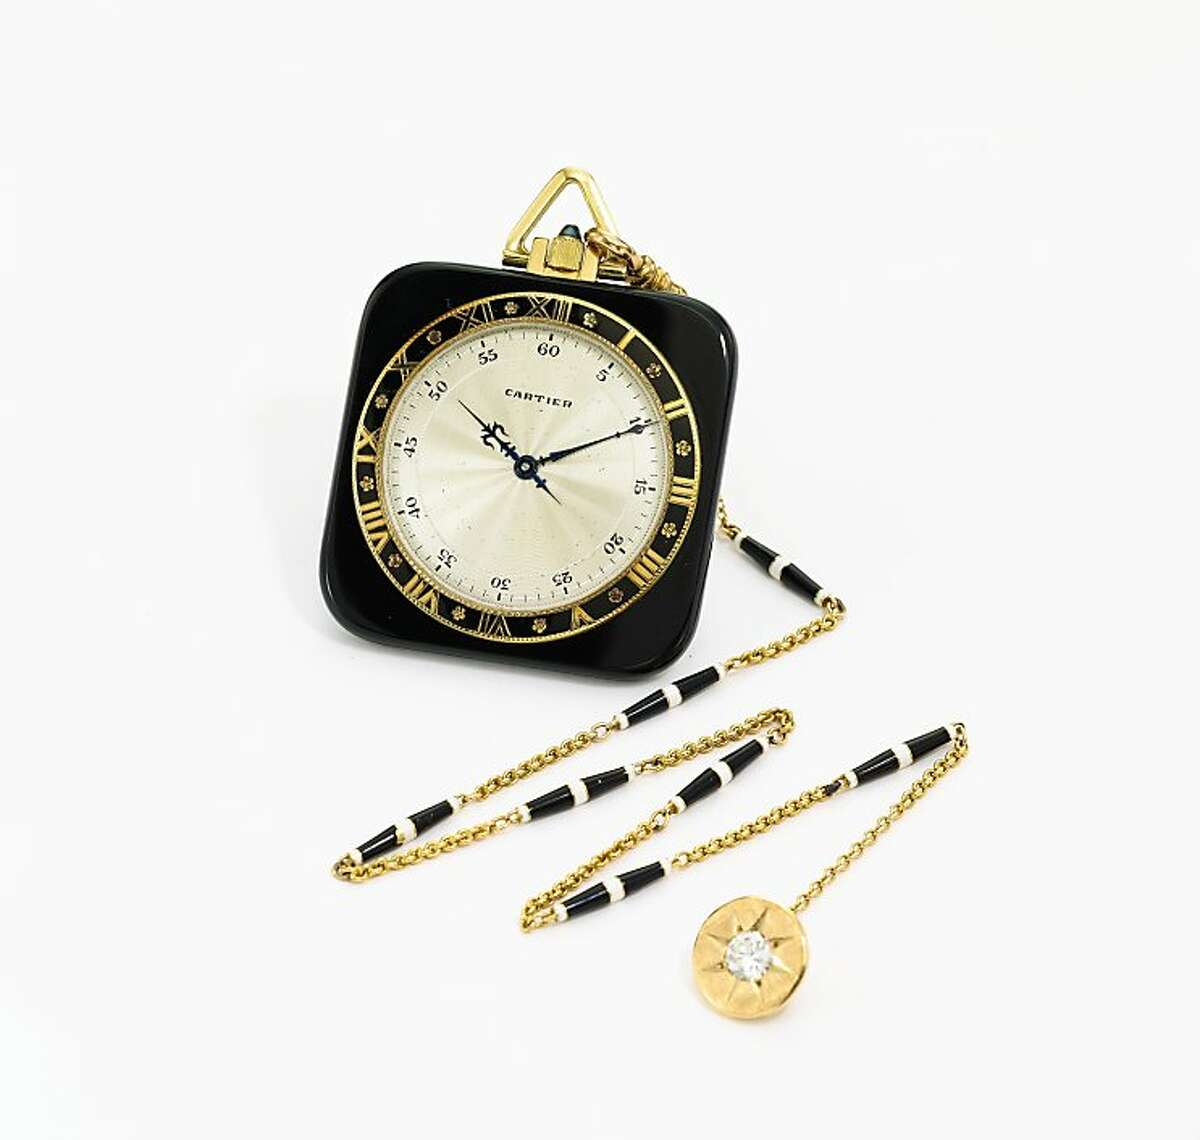 Pieces from the holdings of the late objet d'art collector John Traina of San Francisco will be auctioned at Sotheby's in New York on Dec. 7. Among them: a Cartier/European Watch And Clock, Co., Inc. 18 carat yellow gold, onyx and enamel square open-faced watch, circa 1920 valued at an estimated $8,000-12,000.